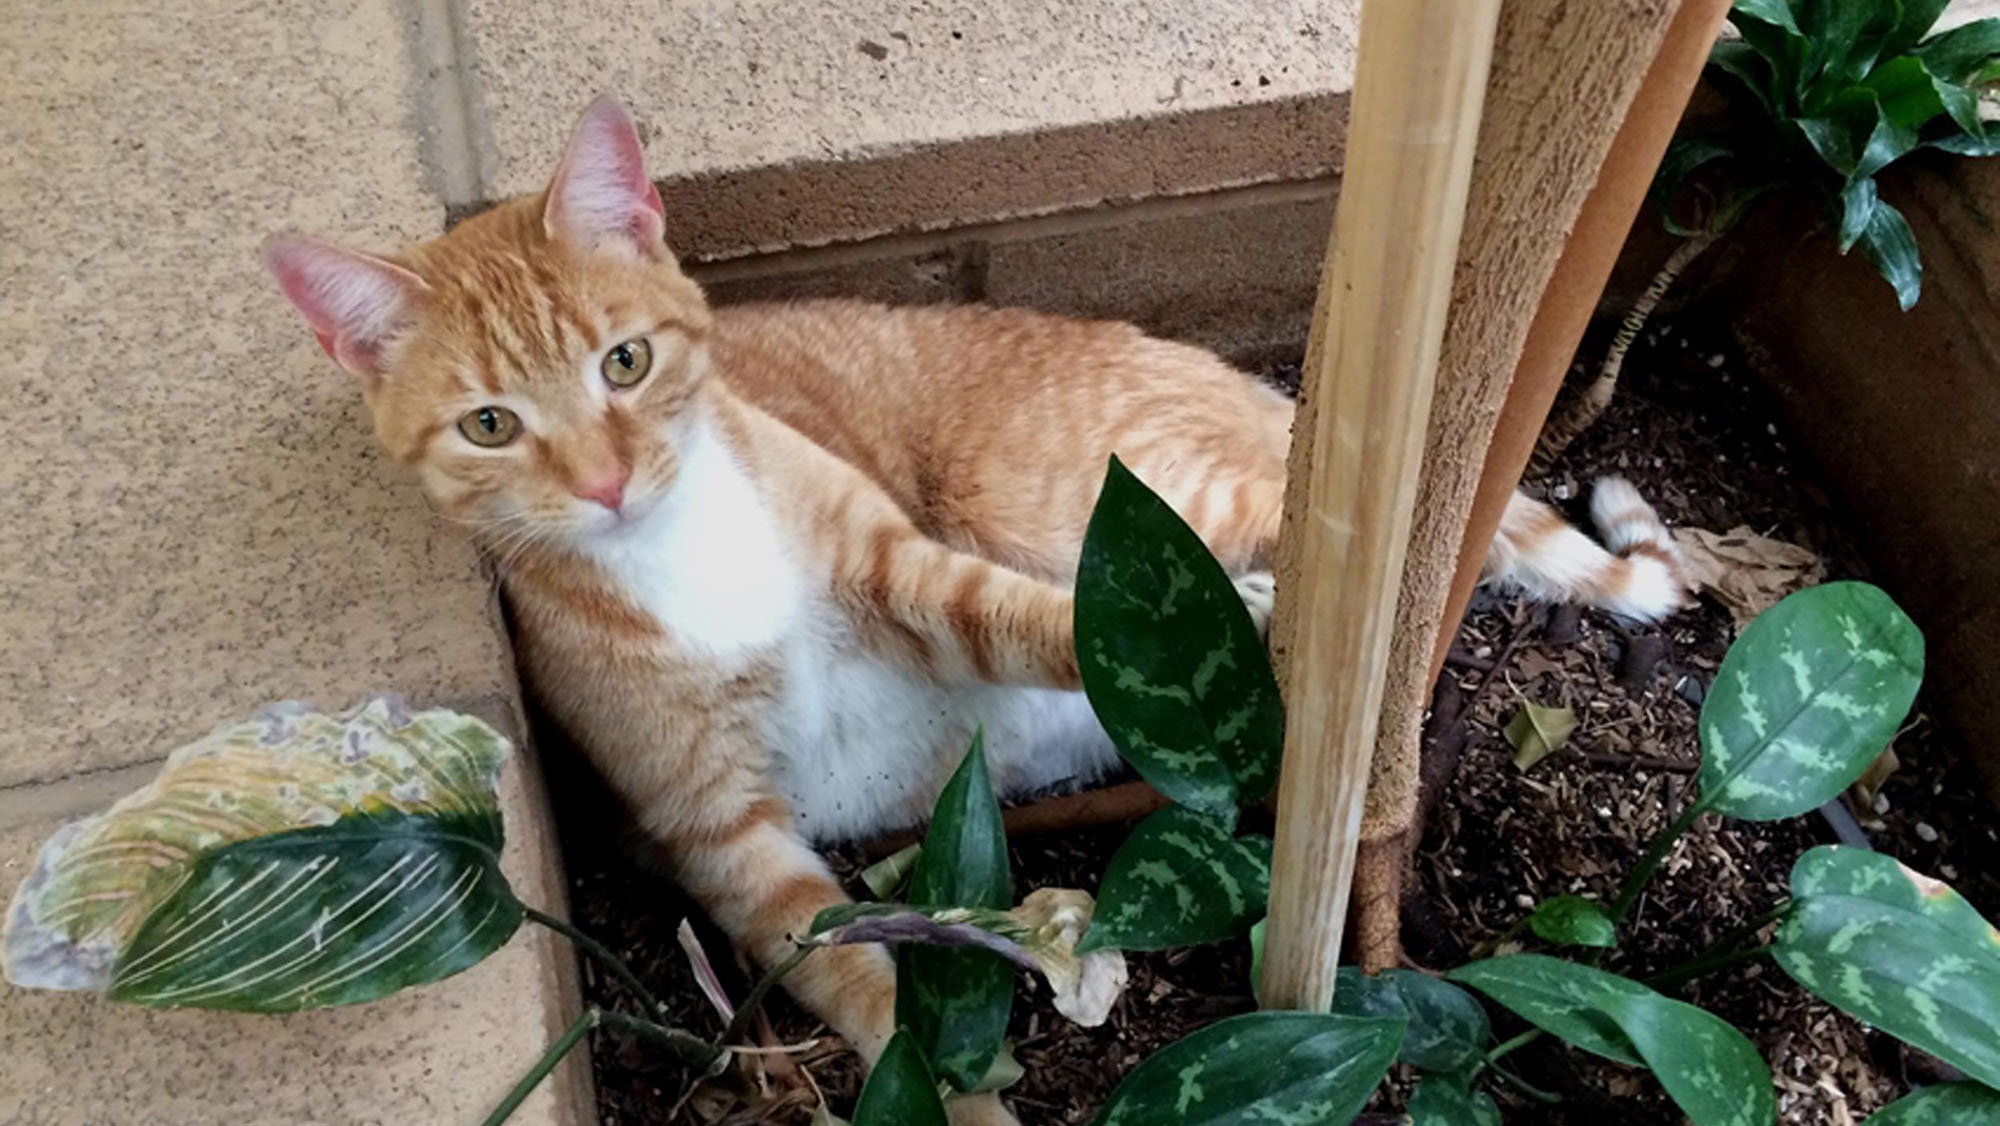 After missing for 2 years, cat turns up 3,000km away